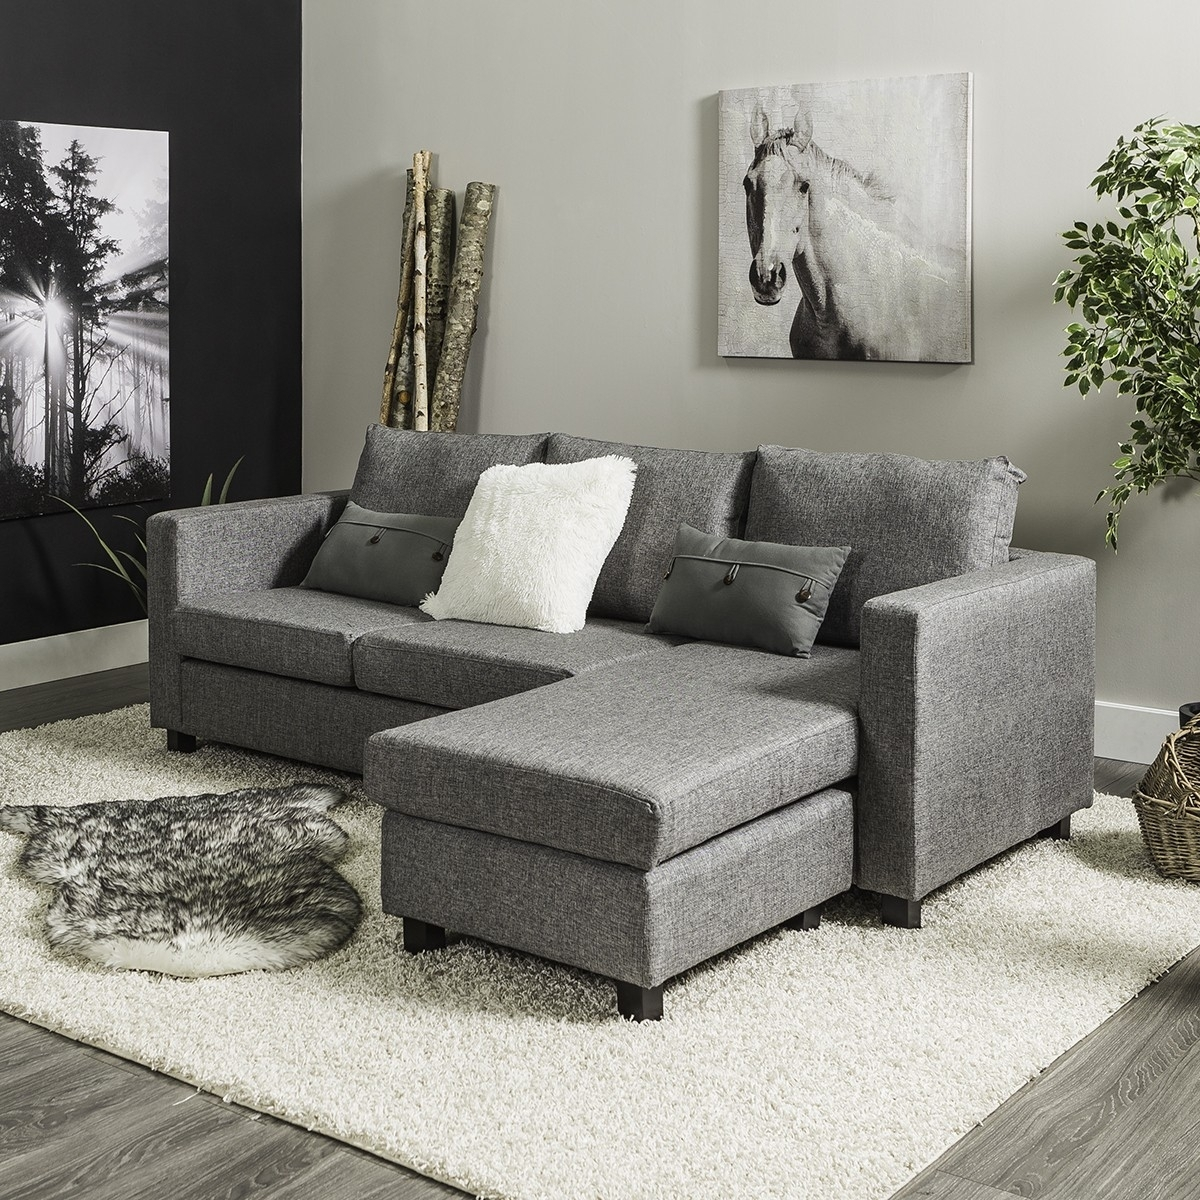 10 inspirations of jysk sectional sofas for Chaise jysk